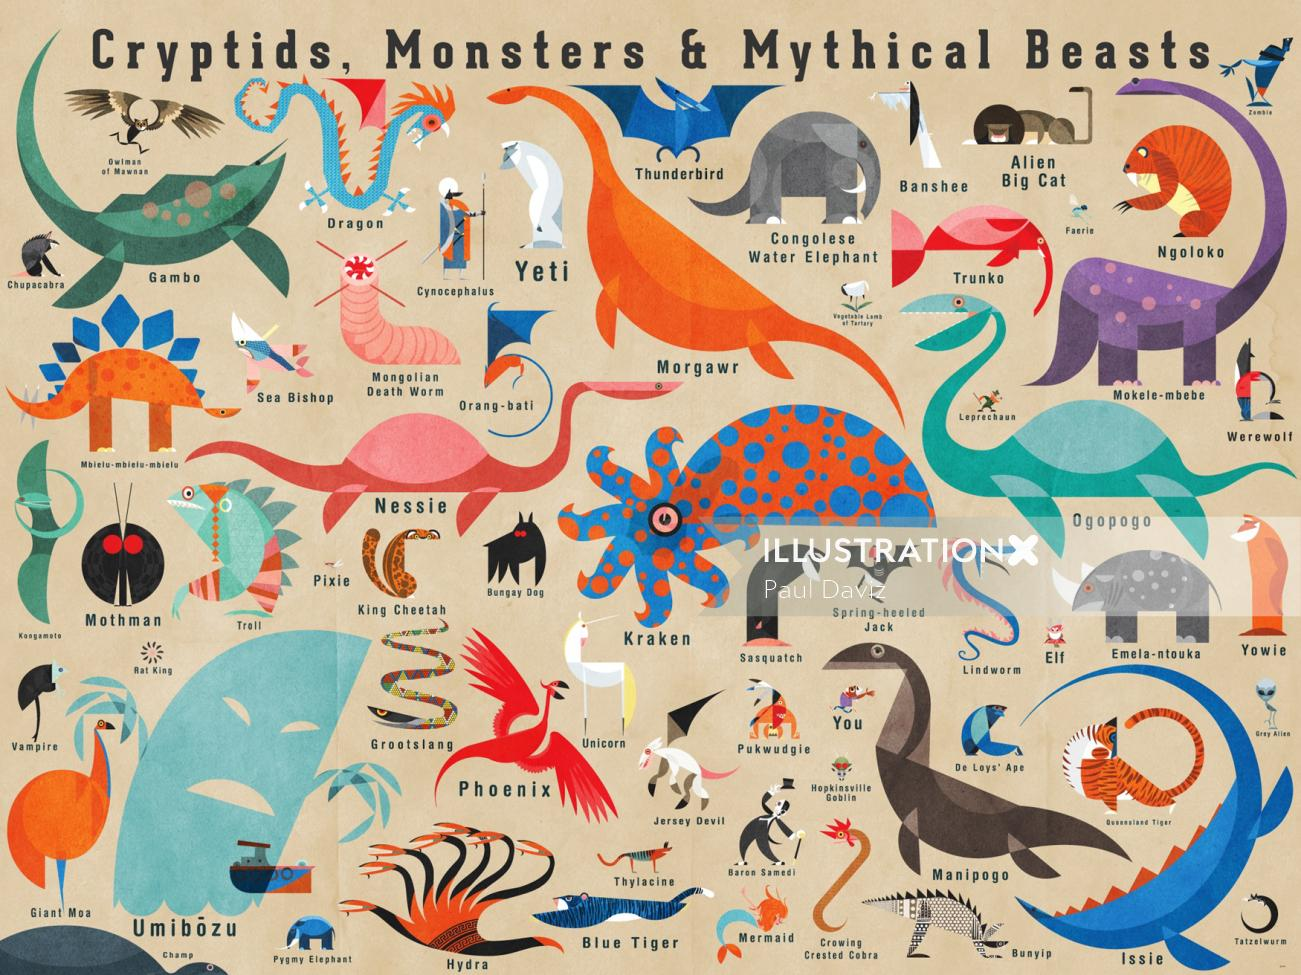 Graphic Cryptids Monsters & Mythical Beasts